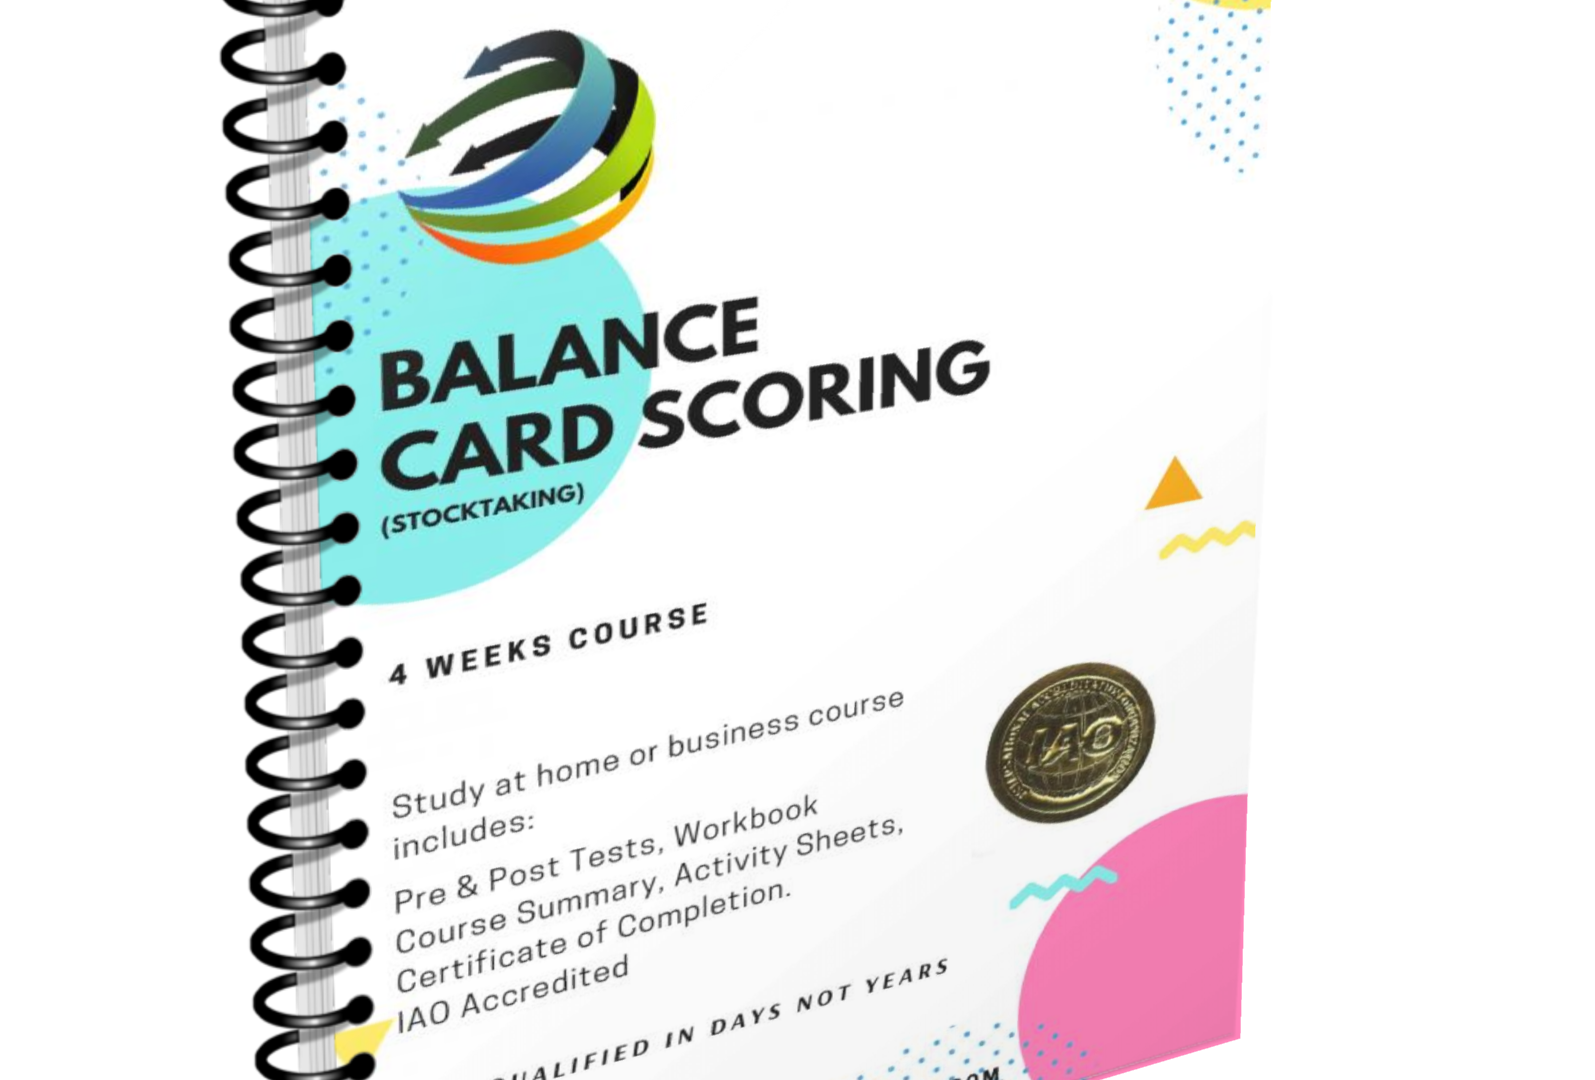 BALANCESCORECARD COURSE 1.png